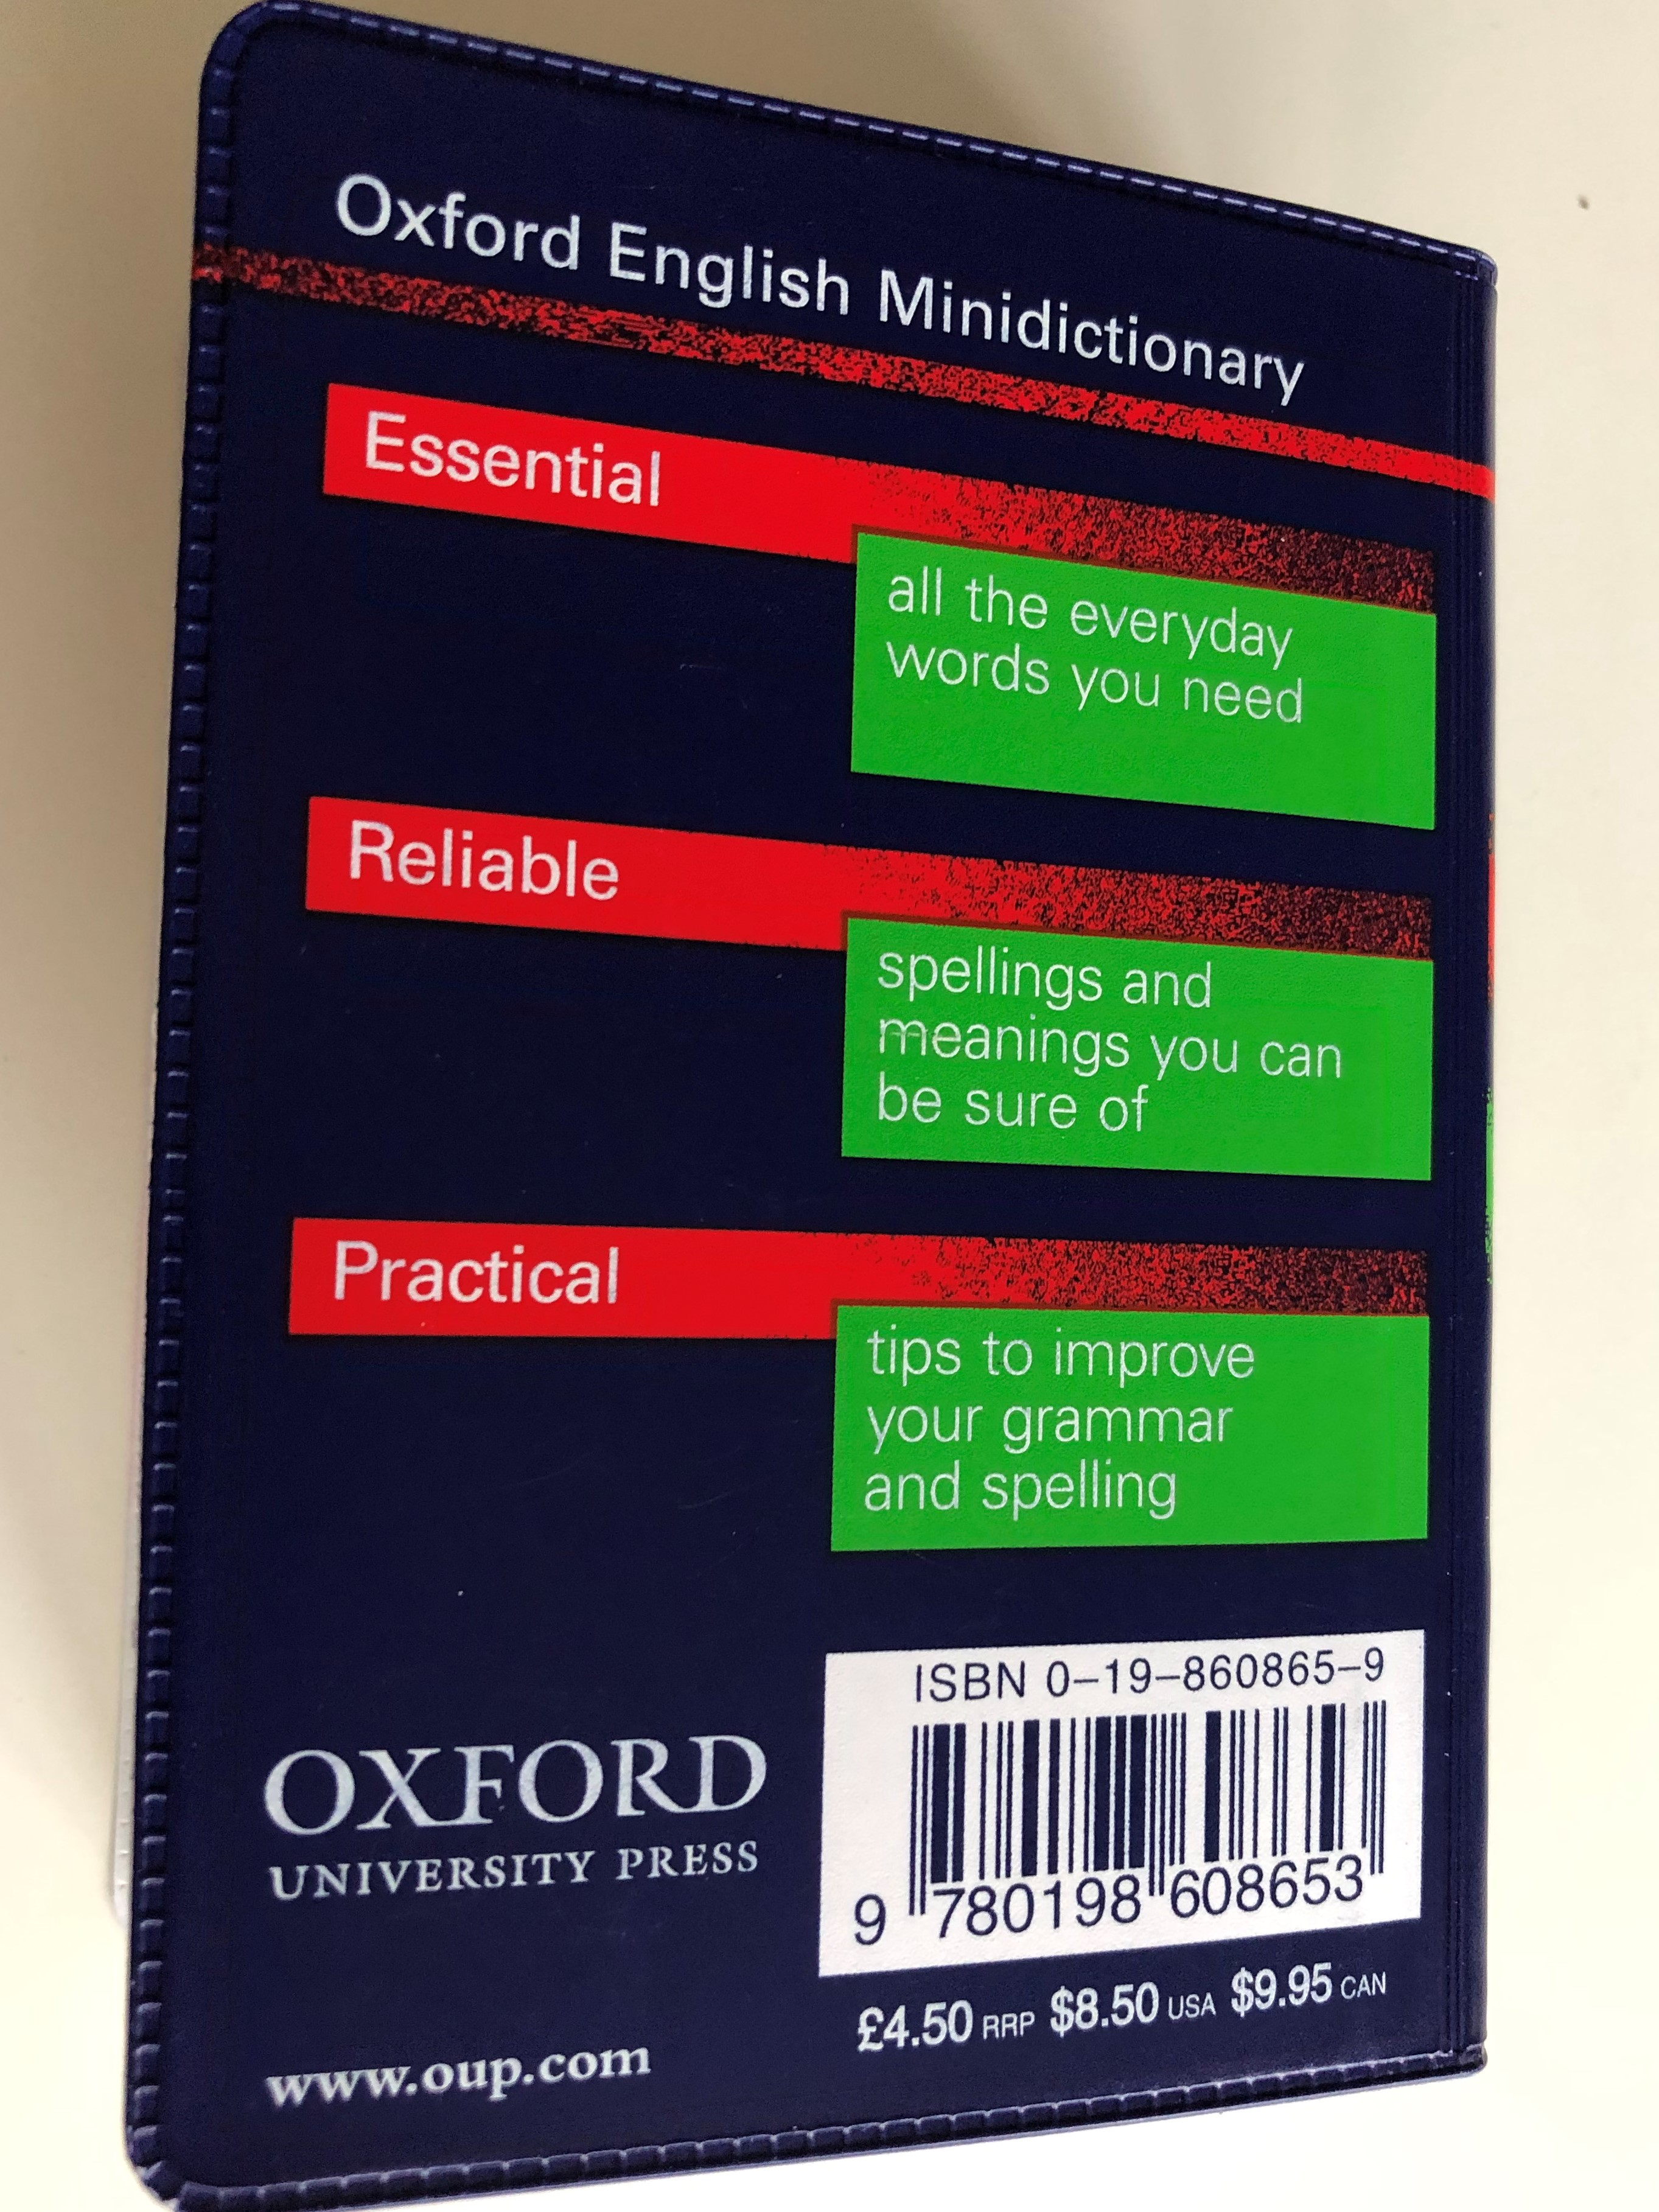 oxford-english-dictionary-the-world-s-most-trusted-dictionaries-essential-reliable-practical-oxford-university-press-3-.jpg